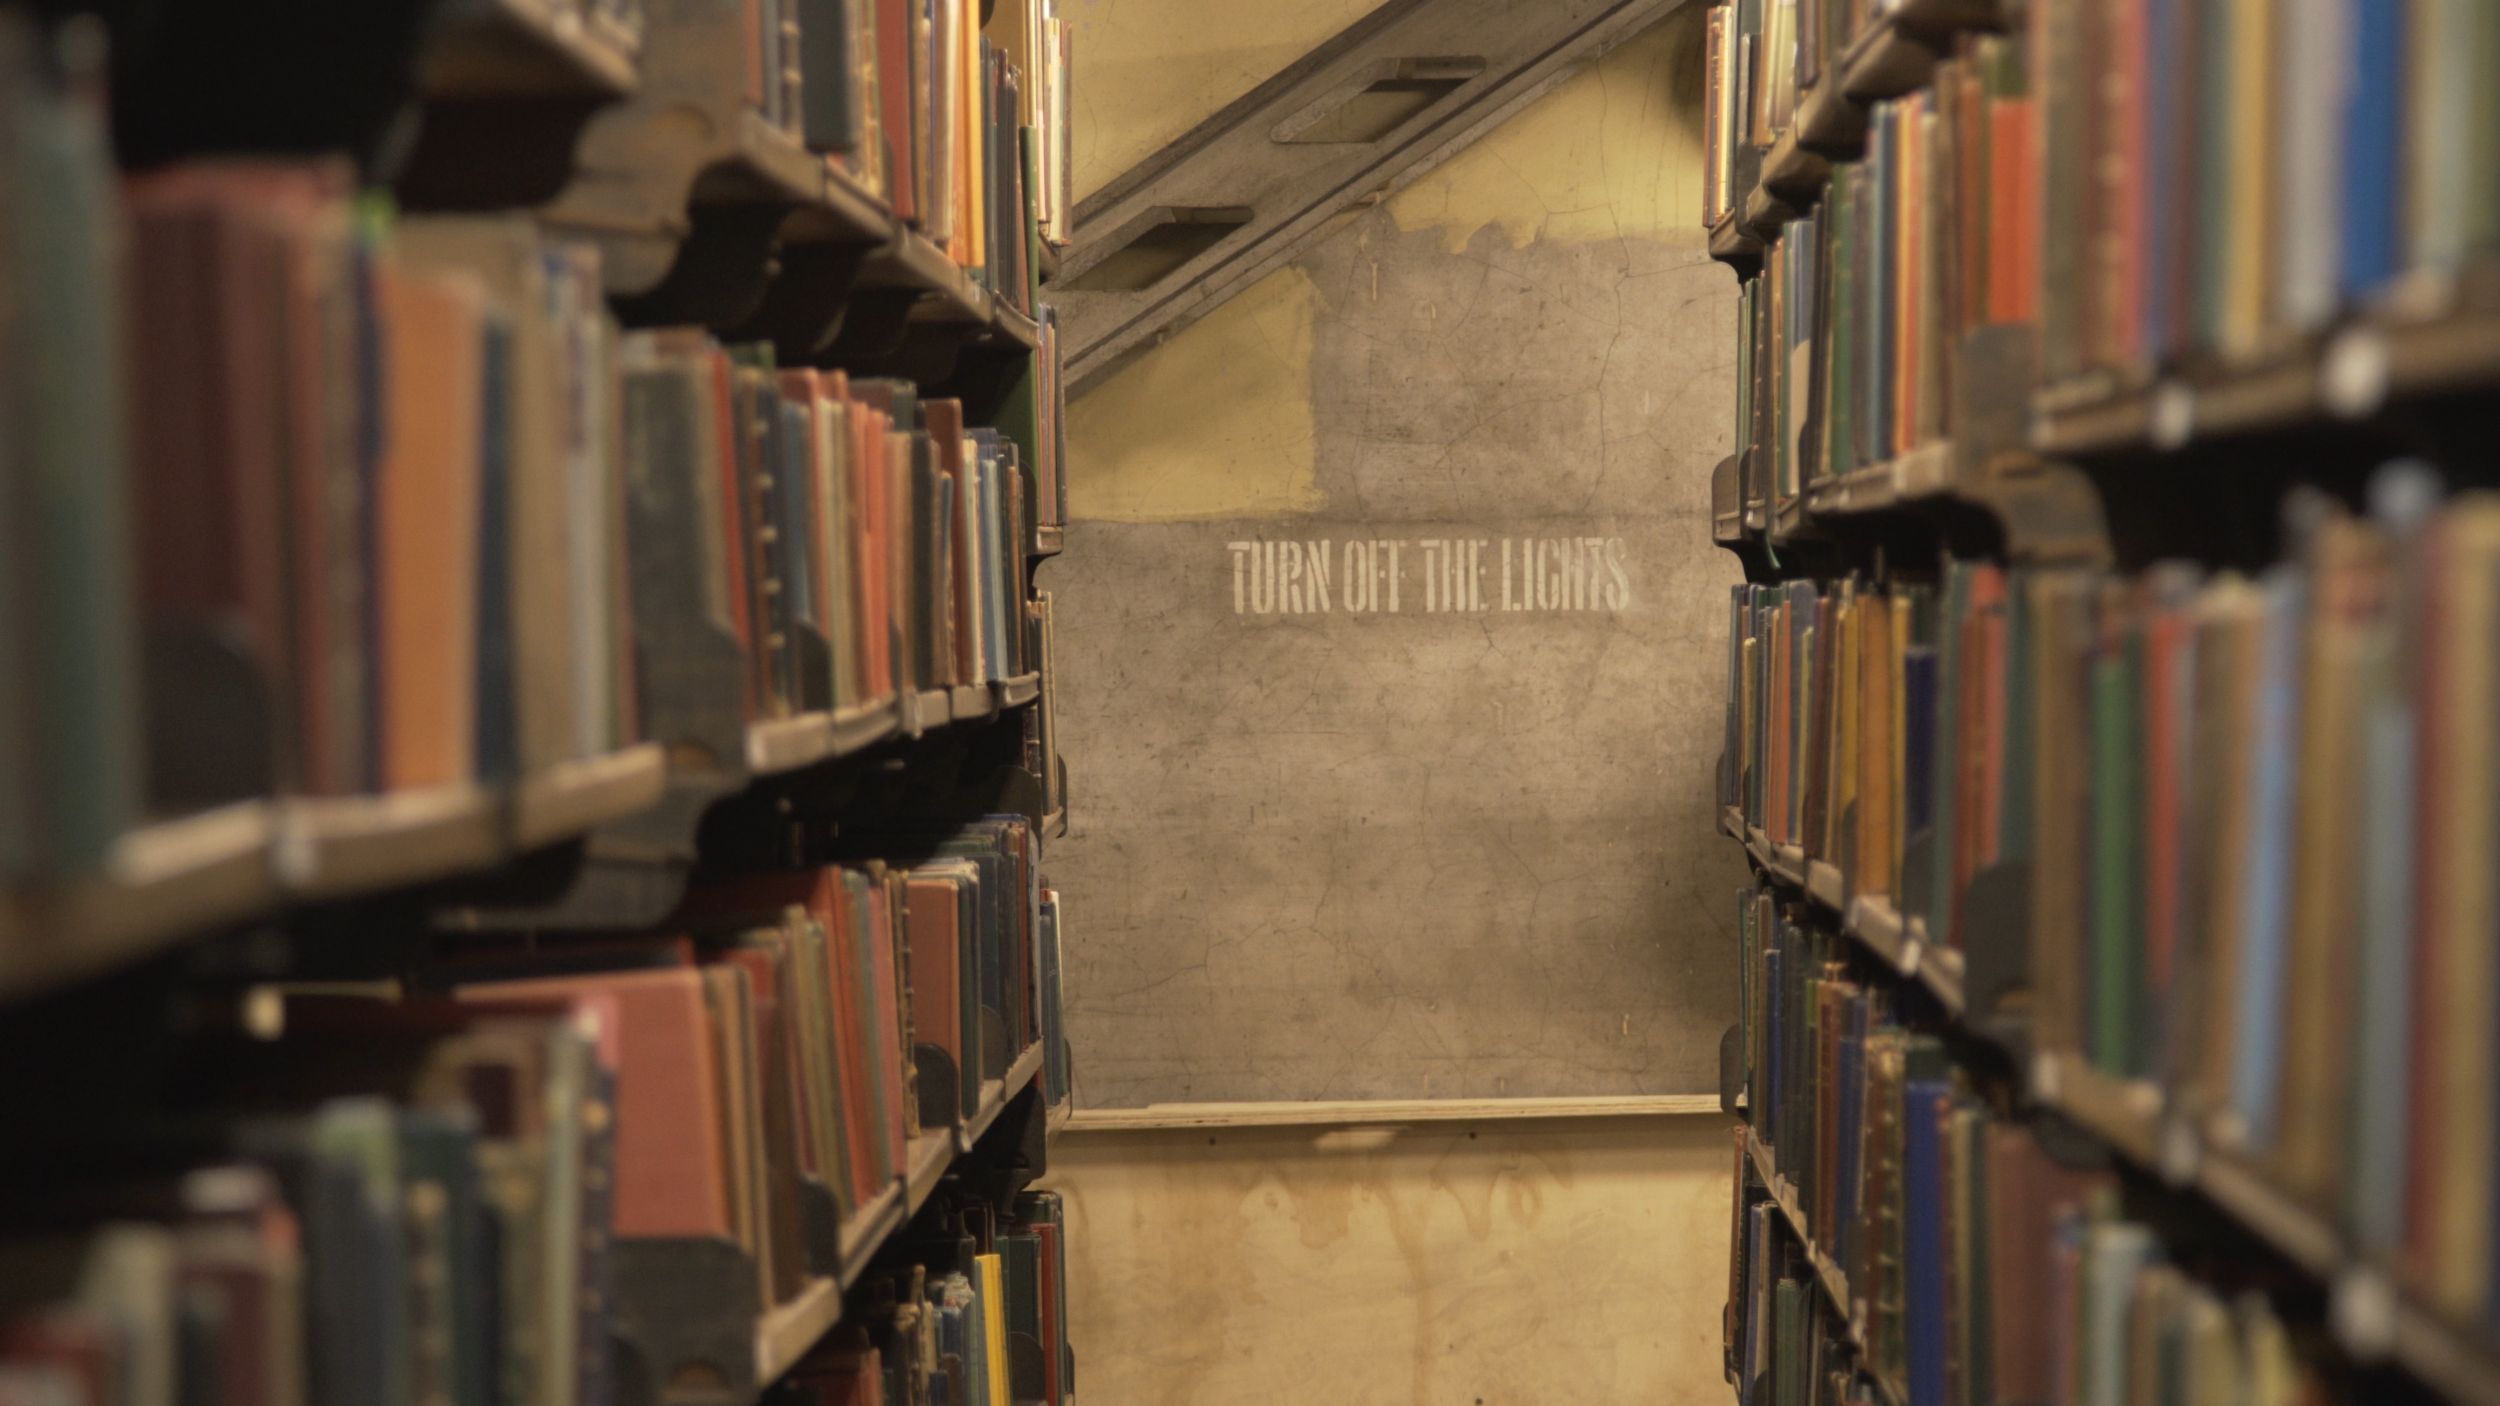 The London Library - We were commissioned by the library to produce a series of films to capture this unique and magical location. We filmed throughout the Library, often before the doors had opened.